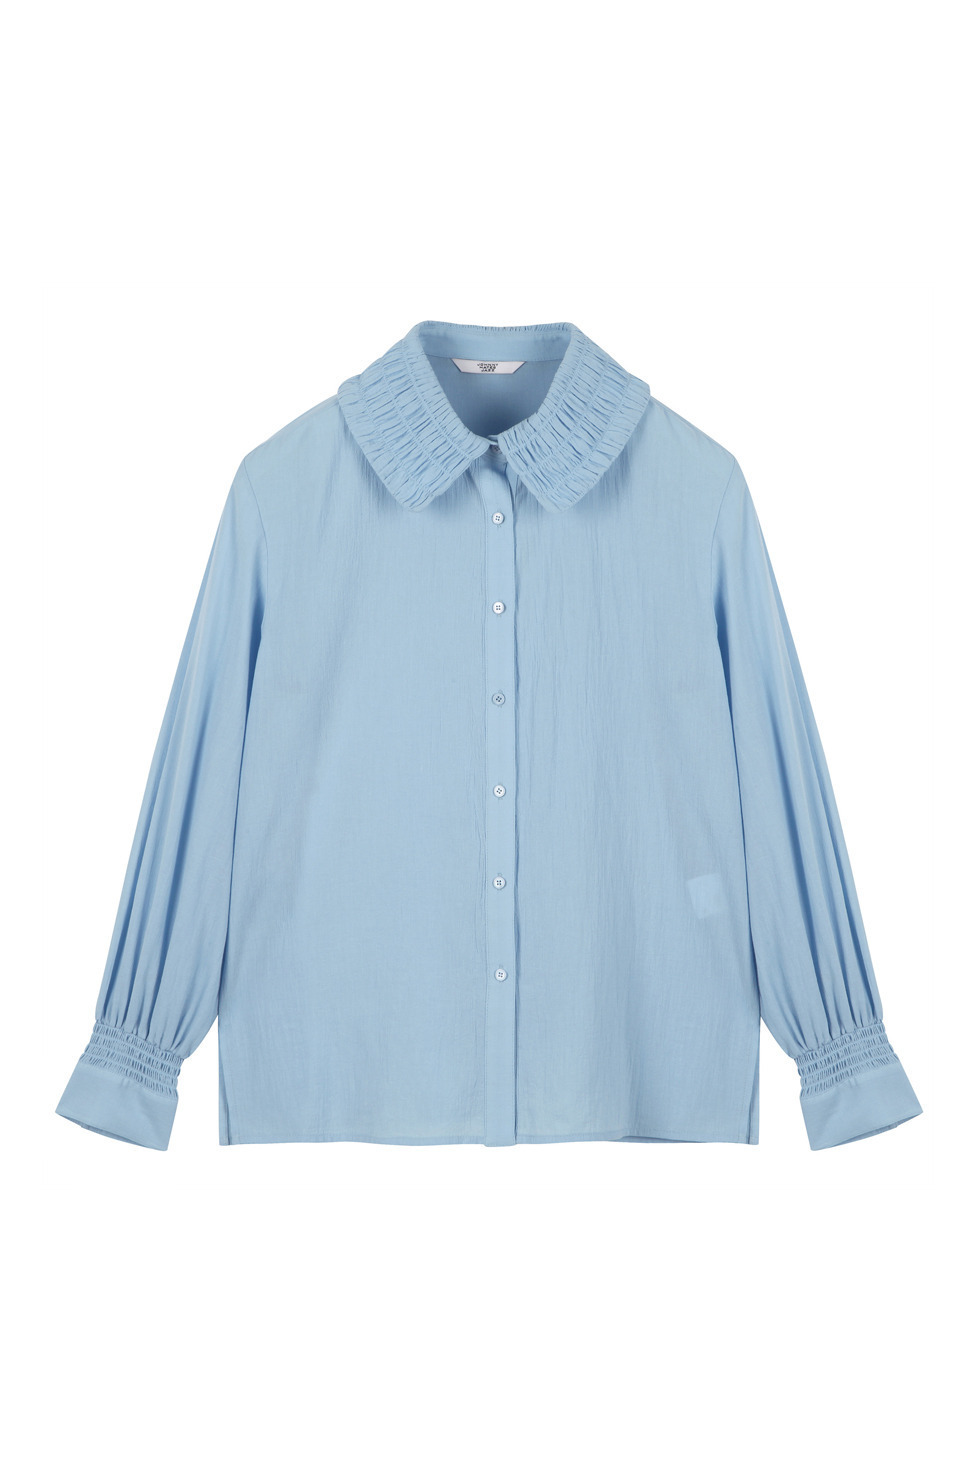 OVERSIZED COLLAR SHIRTS